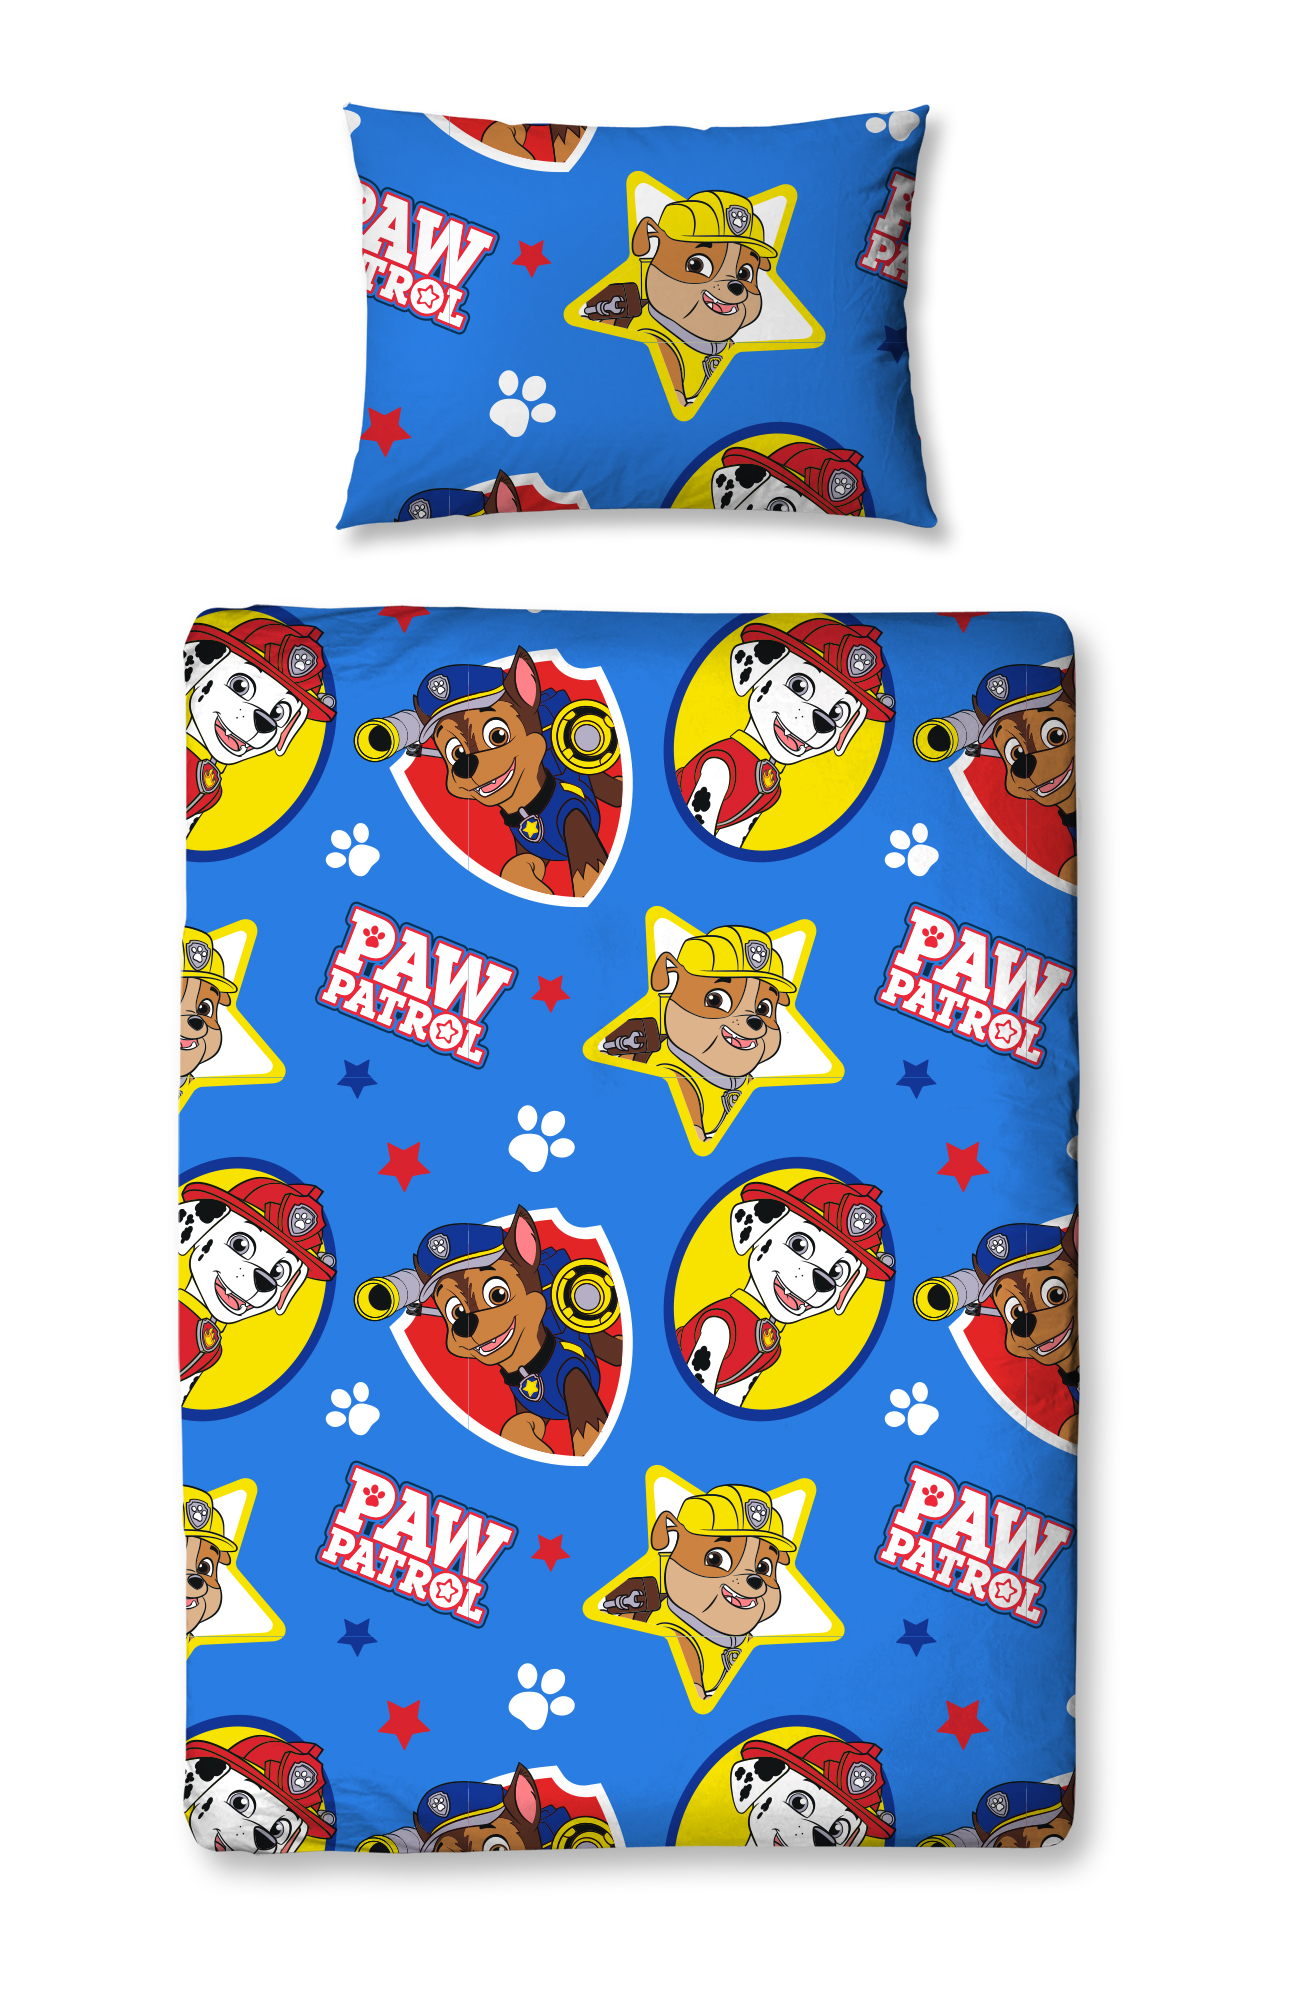 4 in 1 paw patrol pawsome welpen kinderbett b ndel kleinkind bed duvetsteppdecke 5055285399573. Black Bedroom Furniture Sets. Home Design Ideas